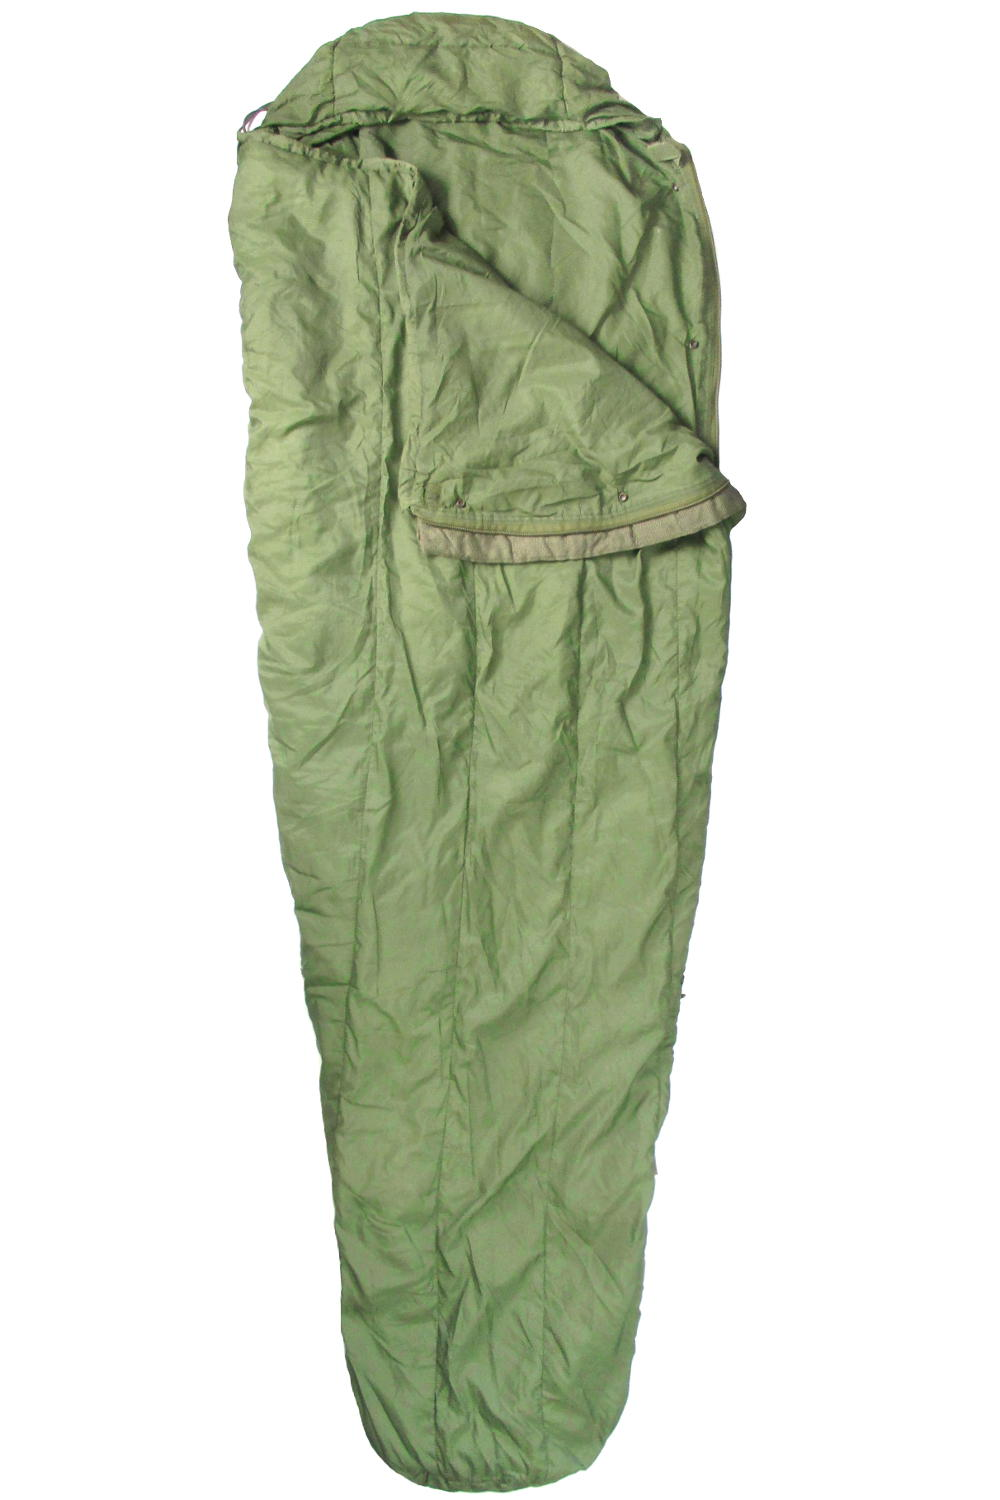 US Patrol Sleeping Bag